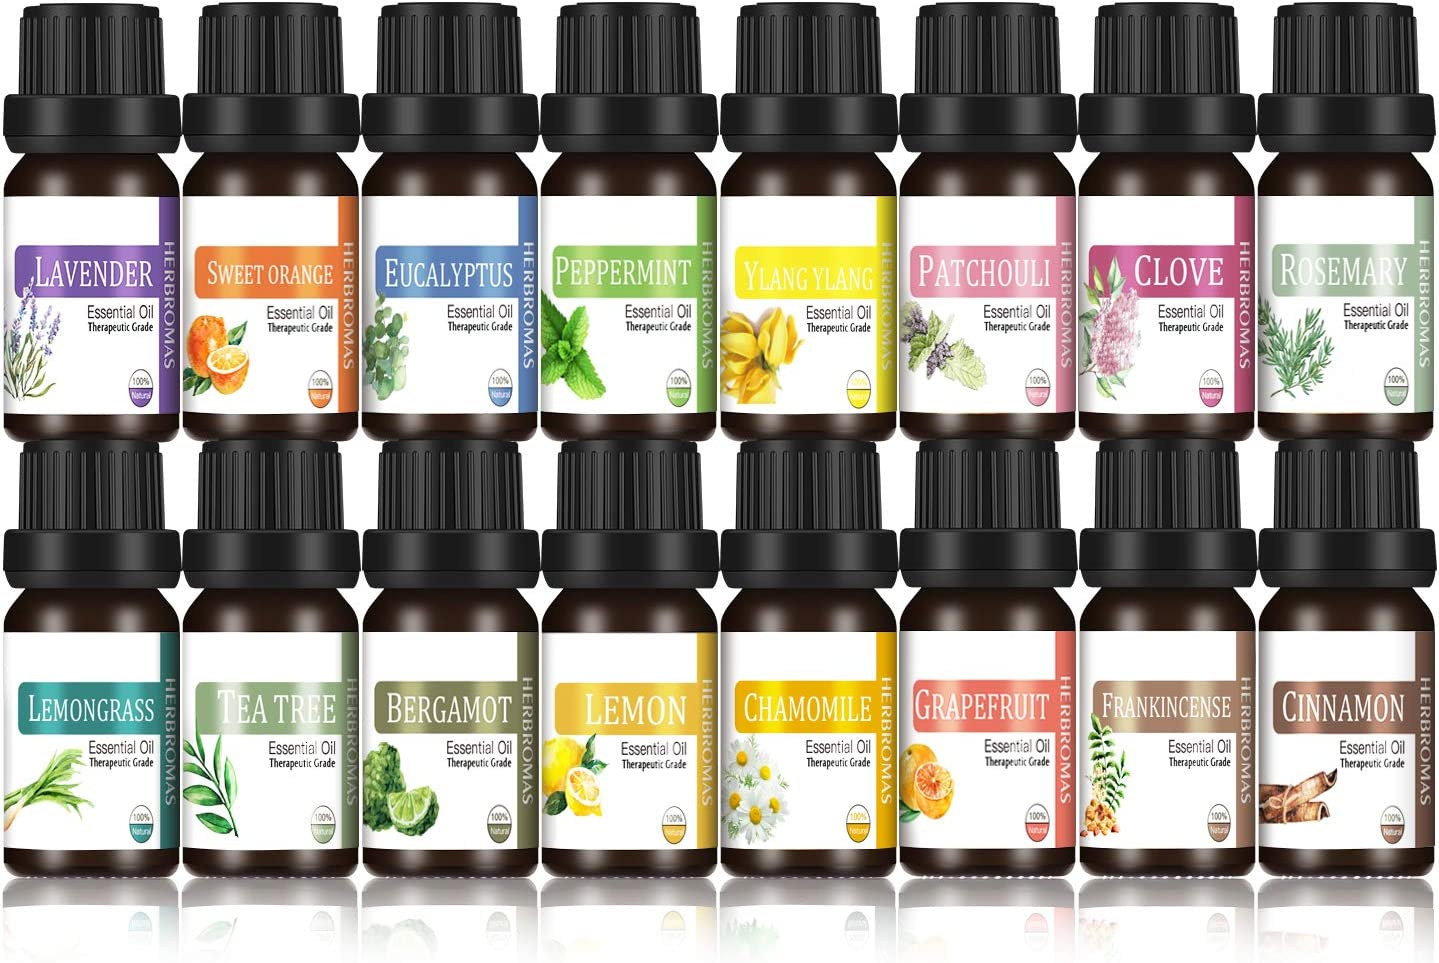 HERBROMAS - Essential Oils Set Top 16x10ml 100% Pure and Natural Oils for Aromatherapy Diffuser [Lavender Eucalyptus Rosemary Frankincense Cinnamon Clove Patchouli Bergamot Ylang Ylang Chamomile]